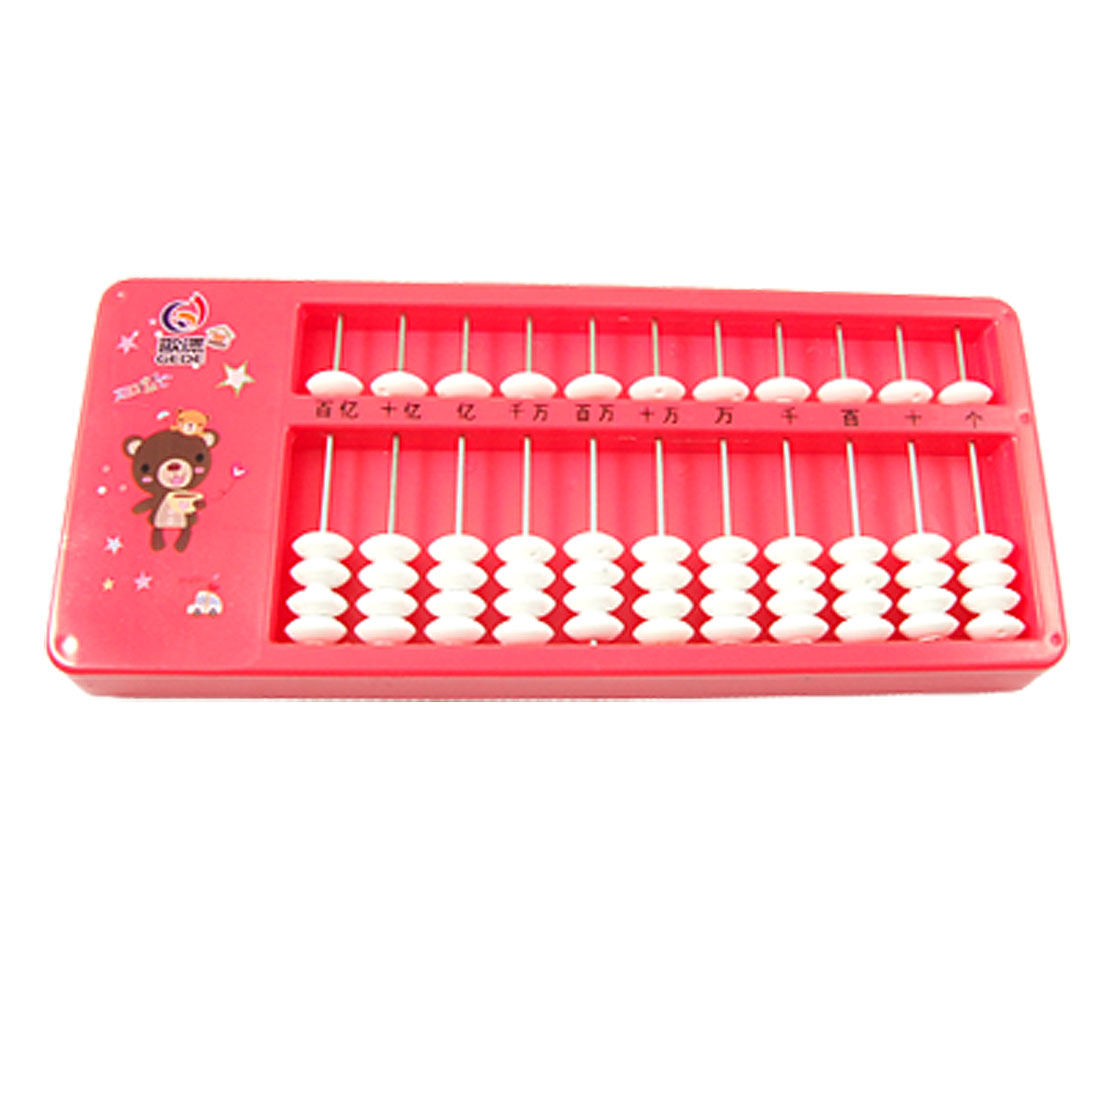 Star Bear Pattern Hot Pink Frame 55 Count Beads 11 Column Arithmetic Abacus Japanese Soroban